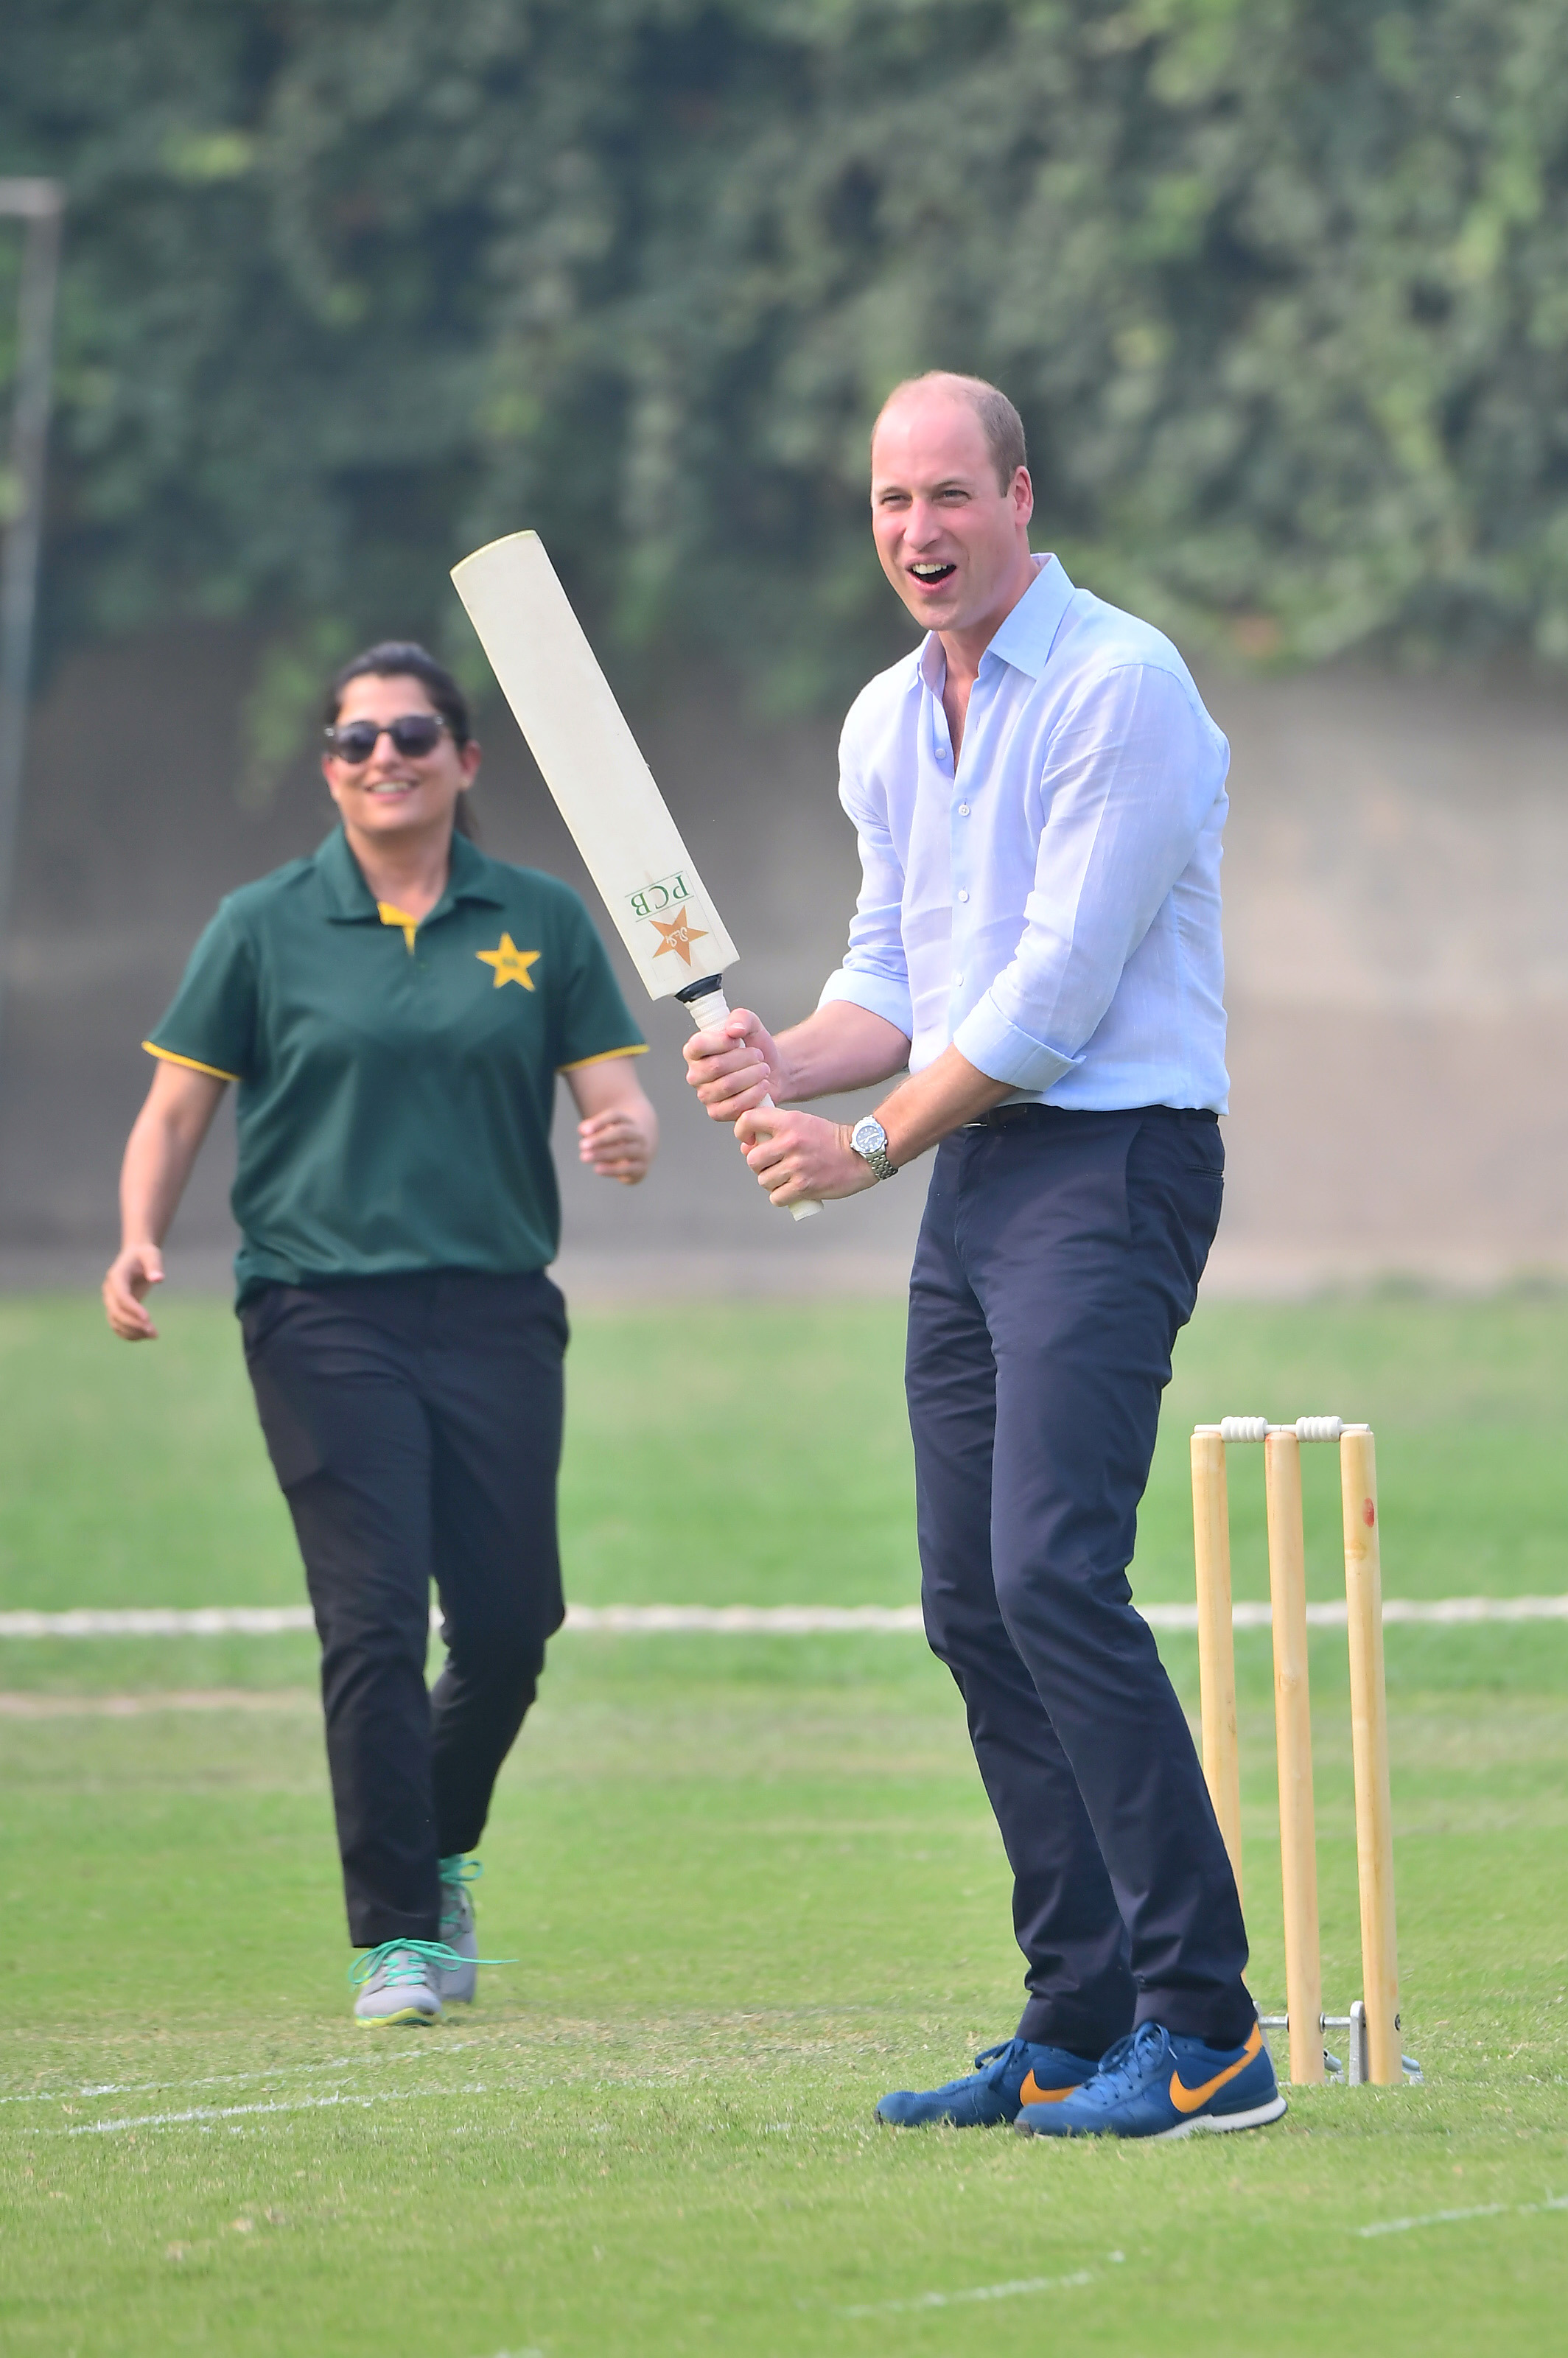 Prince William, Duke of Cambridge plays a round of cricket during a visit of the National Cricket Academy with Catherine, Duchess of Cambridge in Lahore, Pakistan. Photo: Samir Hussein/WireImage/Getty Images